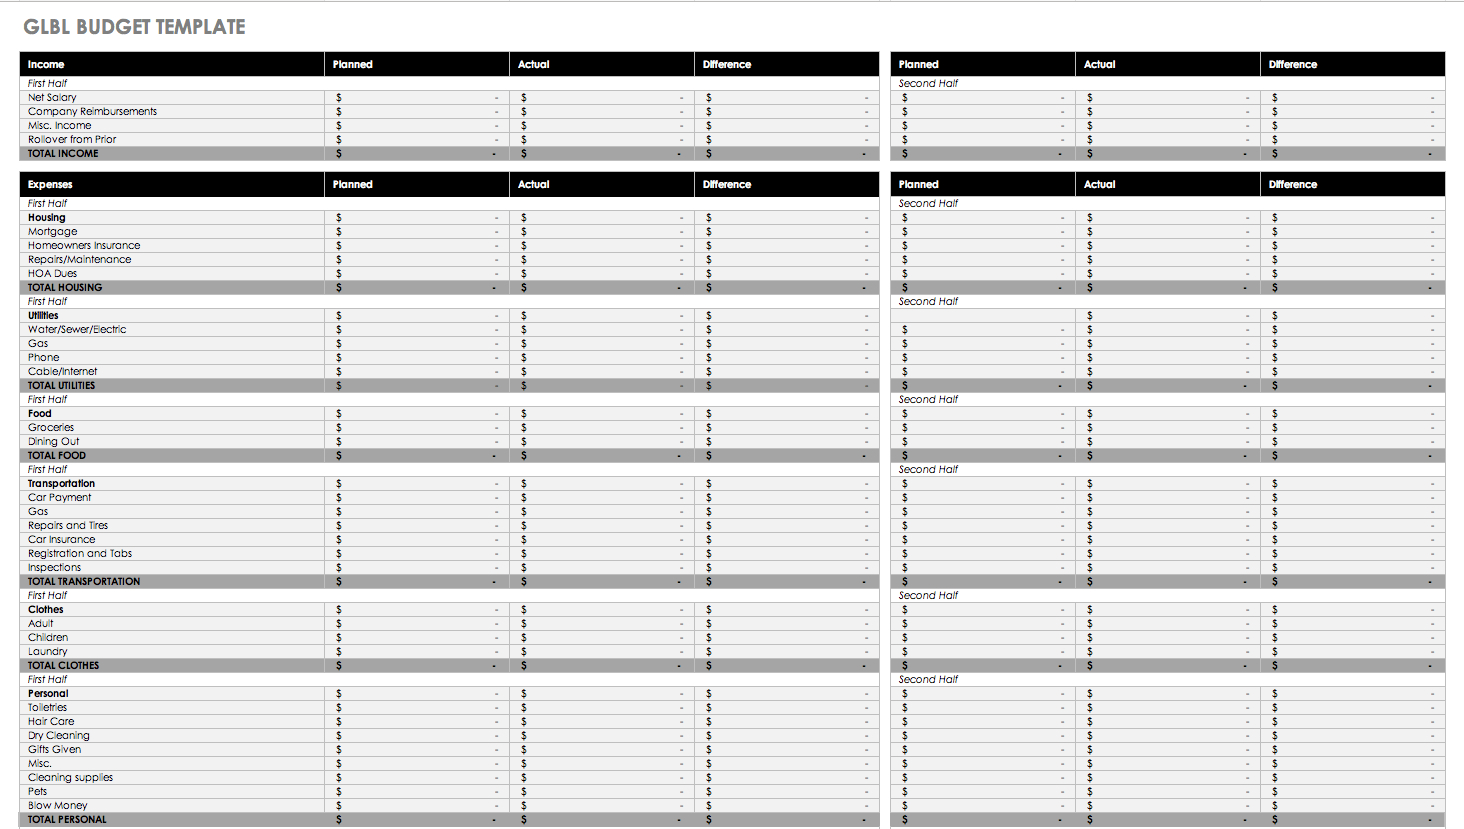 How To Make A Weekly Budget Spreadsheet Throughout Free Budget Templates In Excel For Any Use